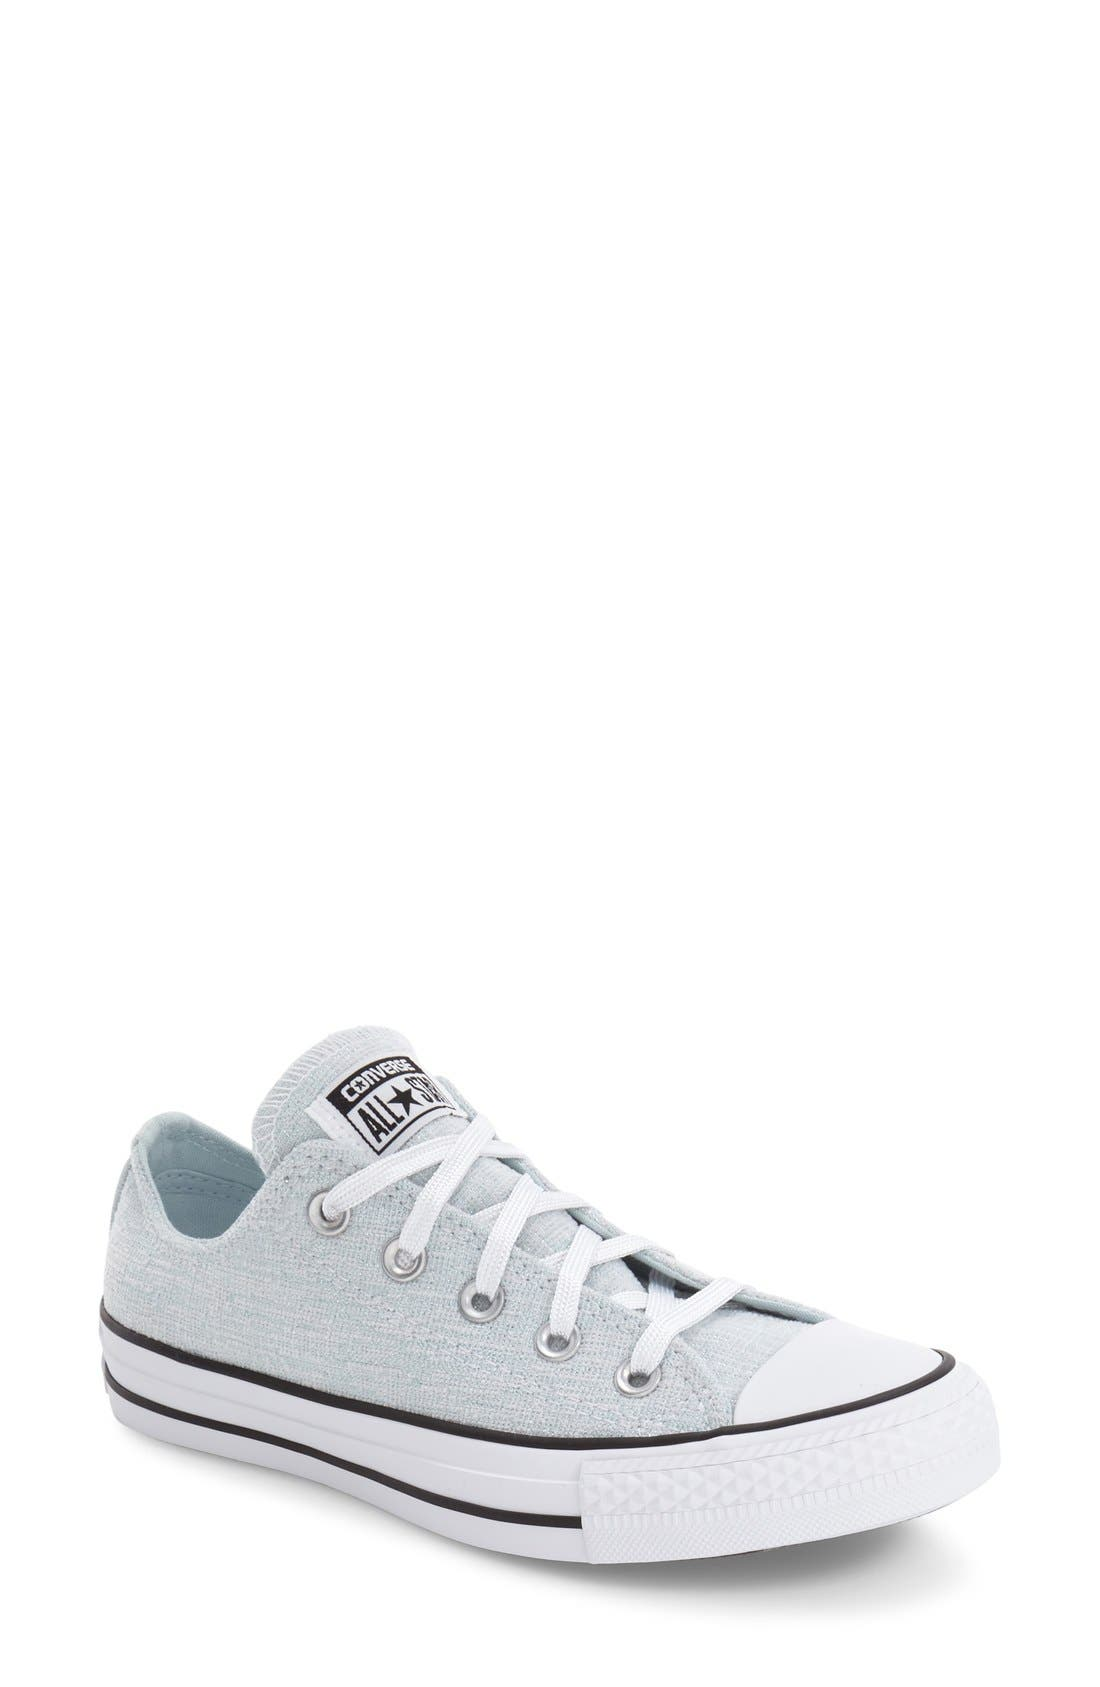 Alternate Image 1 Selected - Converse Chuck Taylor® All Star® Chuck Ox Knit Low Top Sneaker (Women)